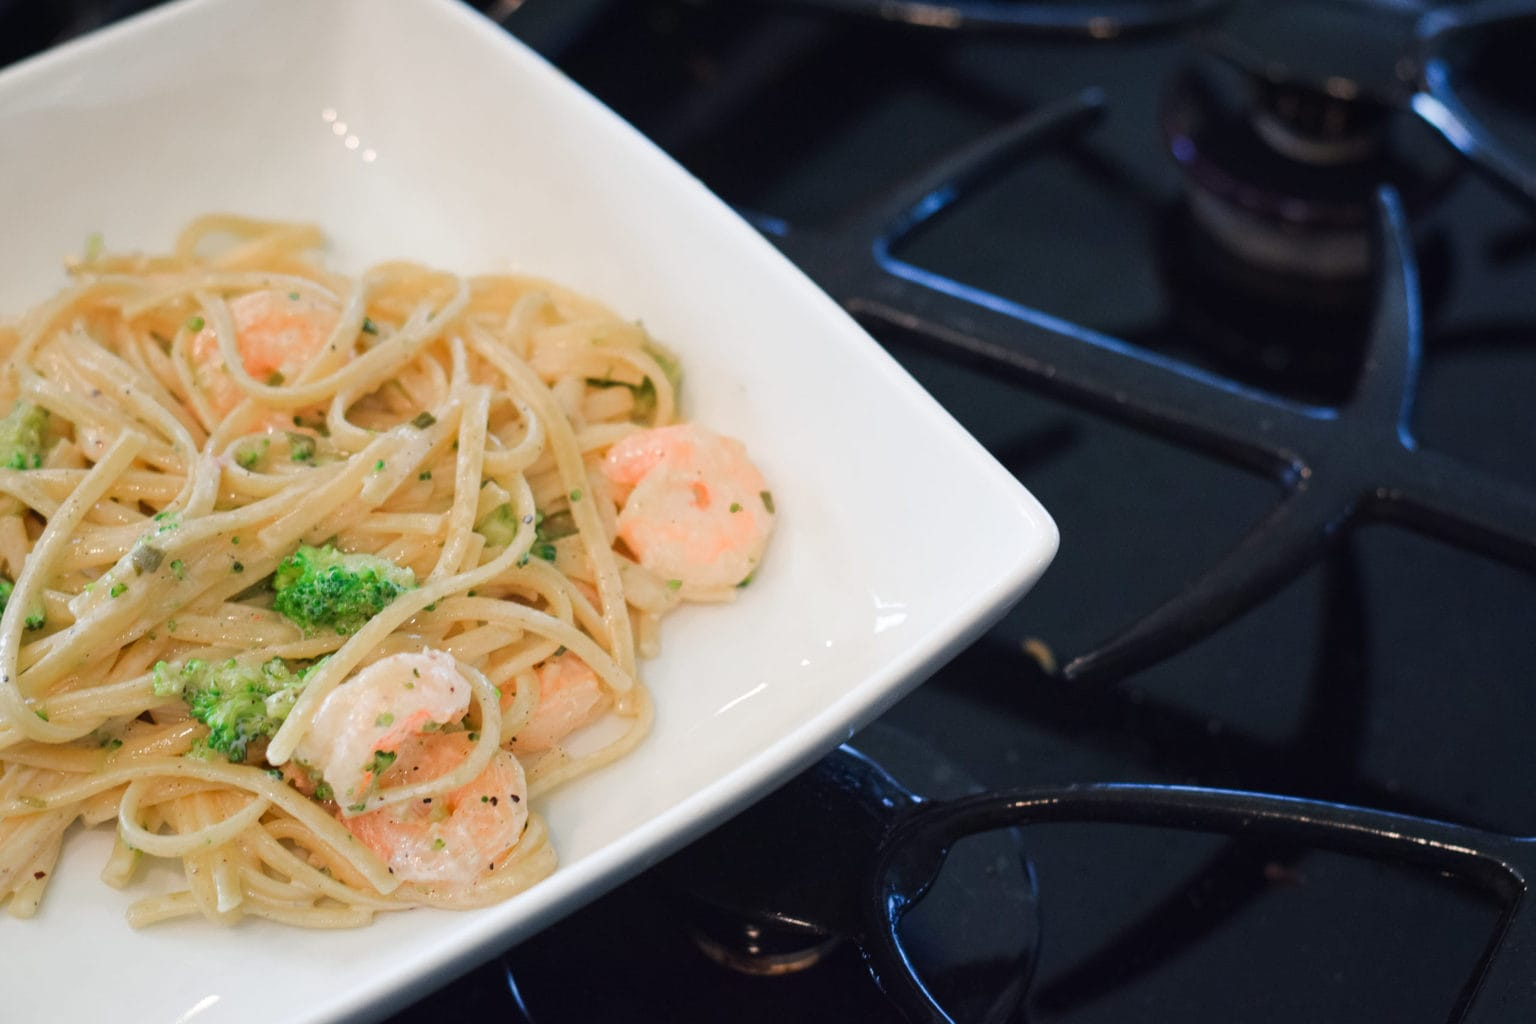 Shrimp and Broccoli Pasta Recipe by This Little Home of Mine